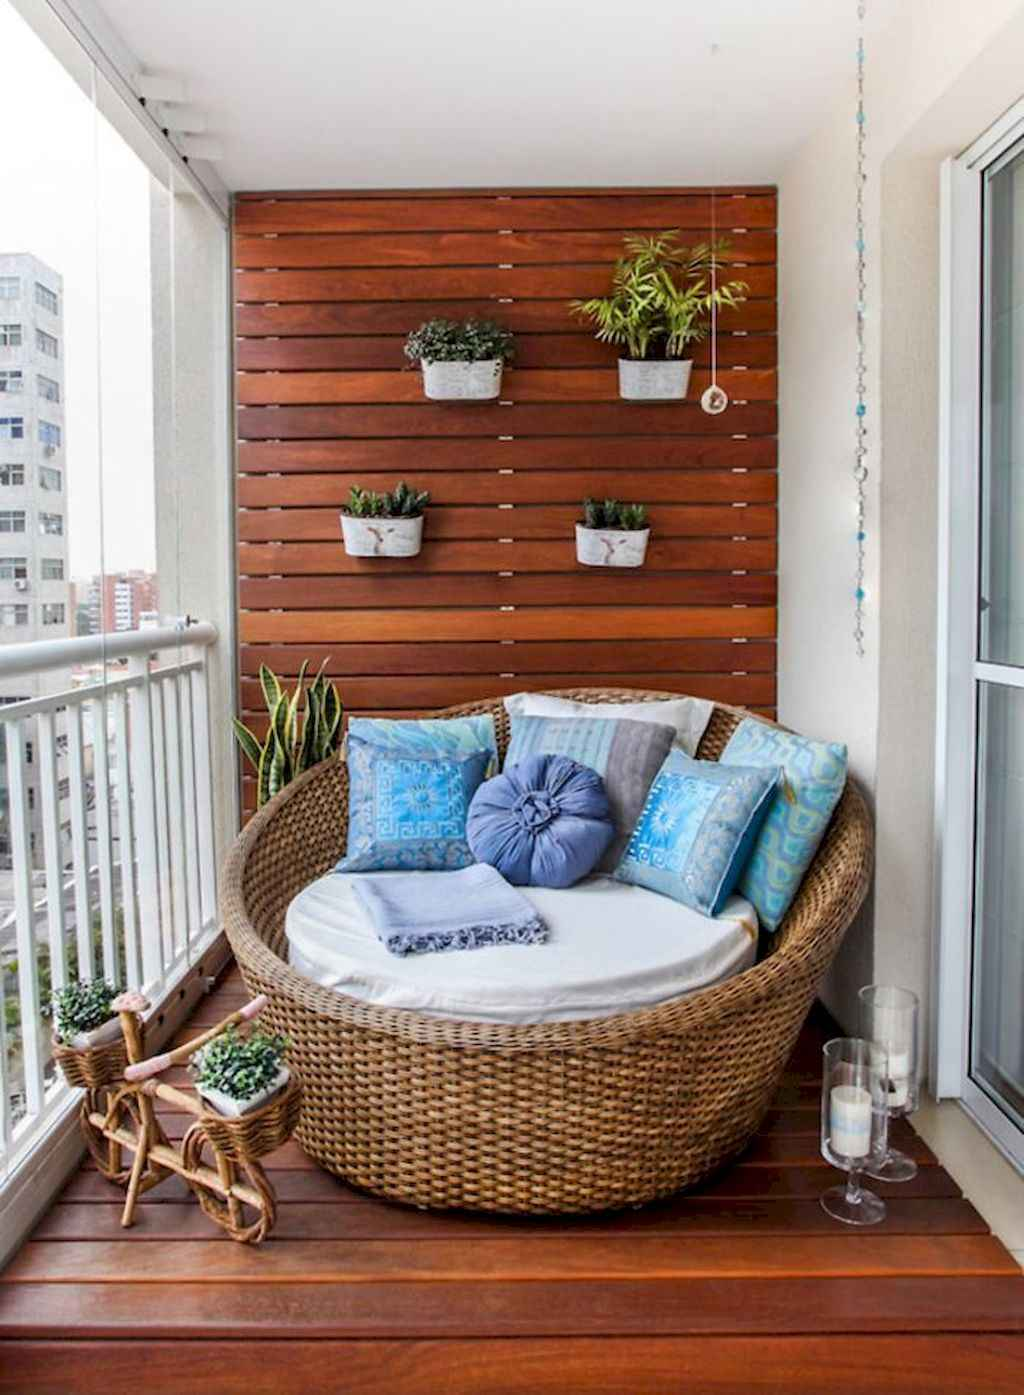 Cozy apartment decorating ideas on a budget (5)